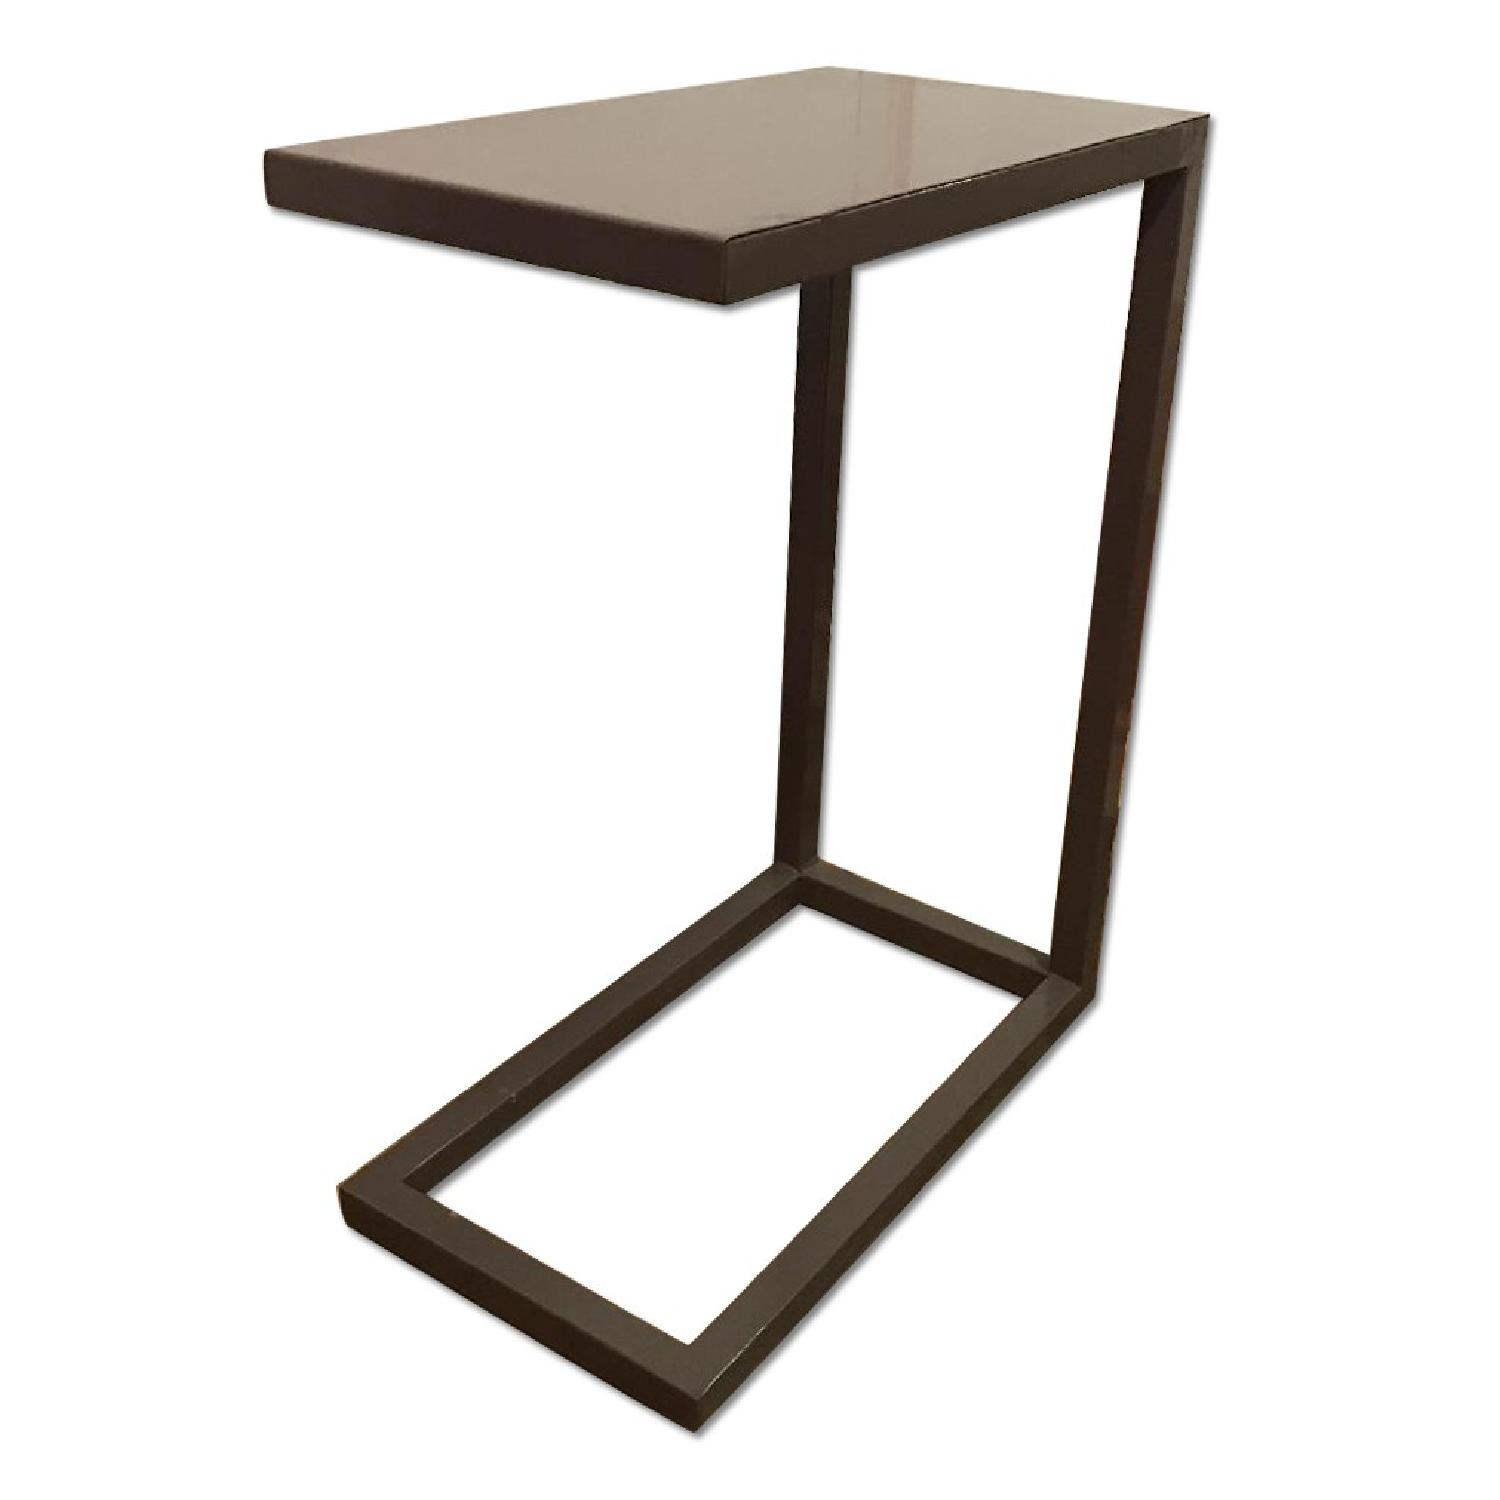 Crate & Barrel C Side Table - image-0